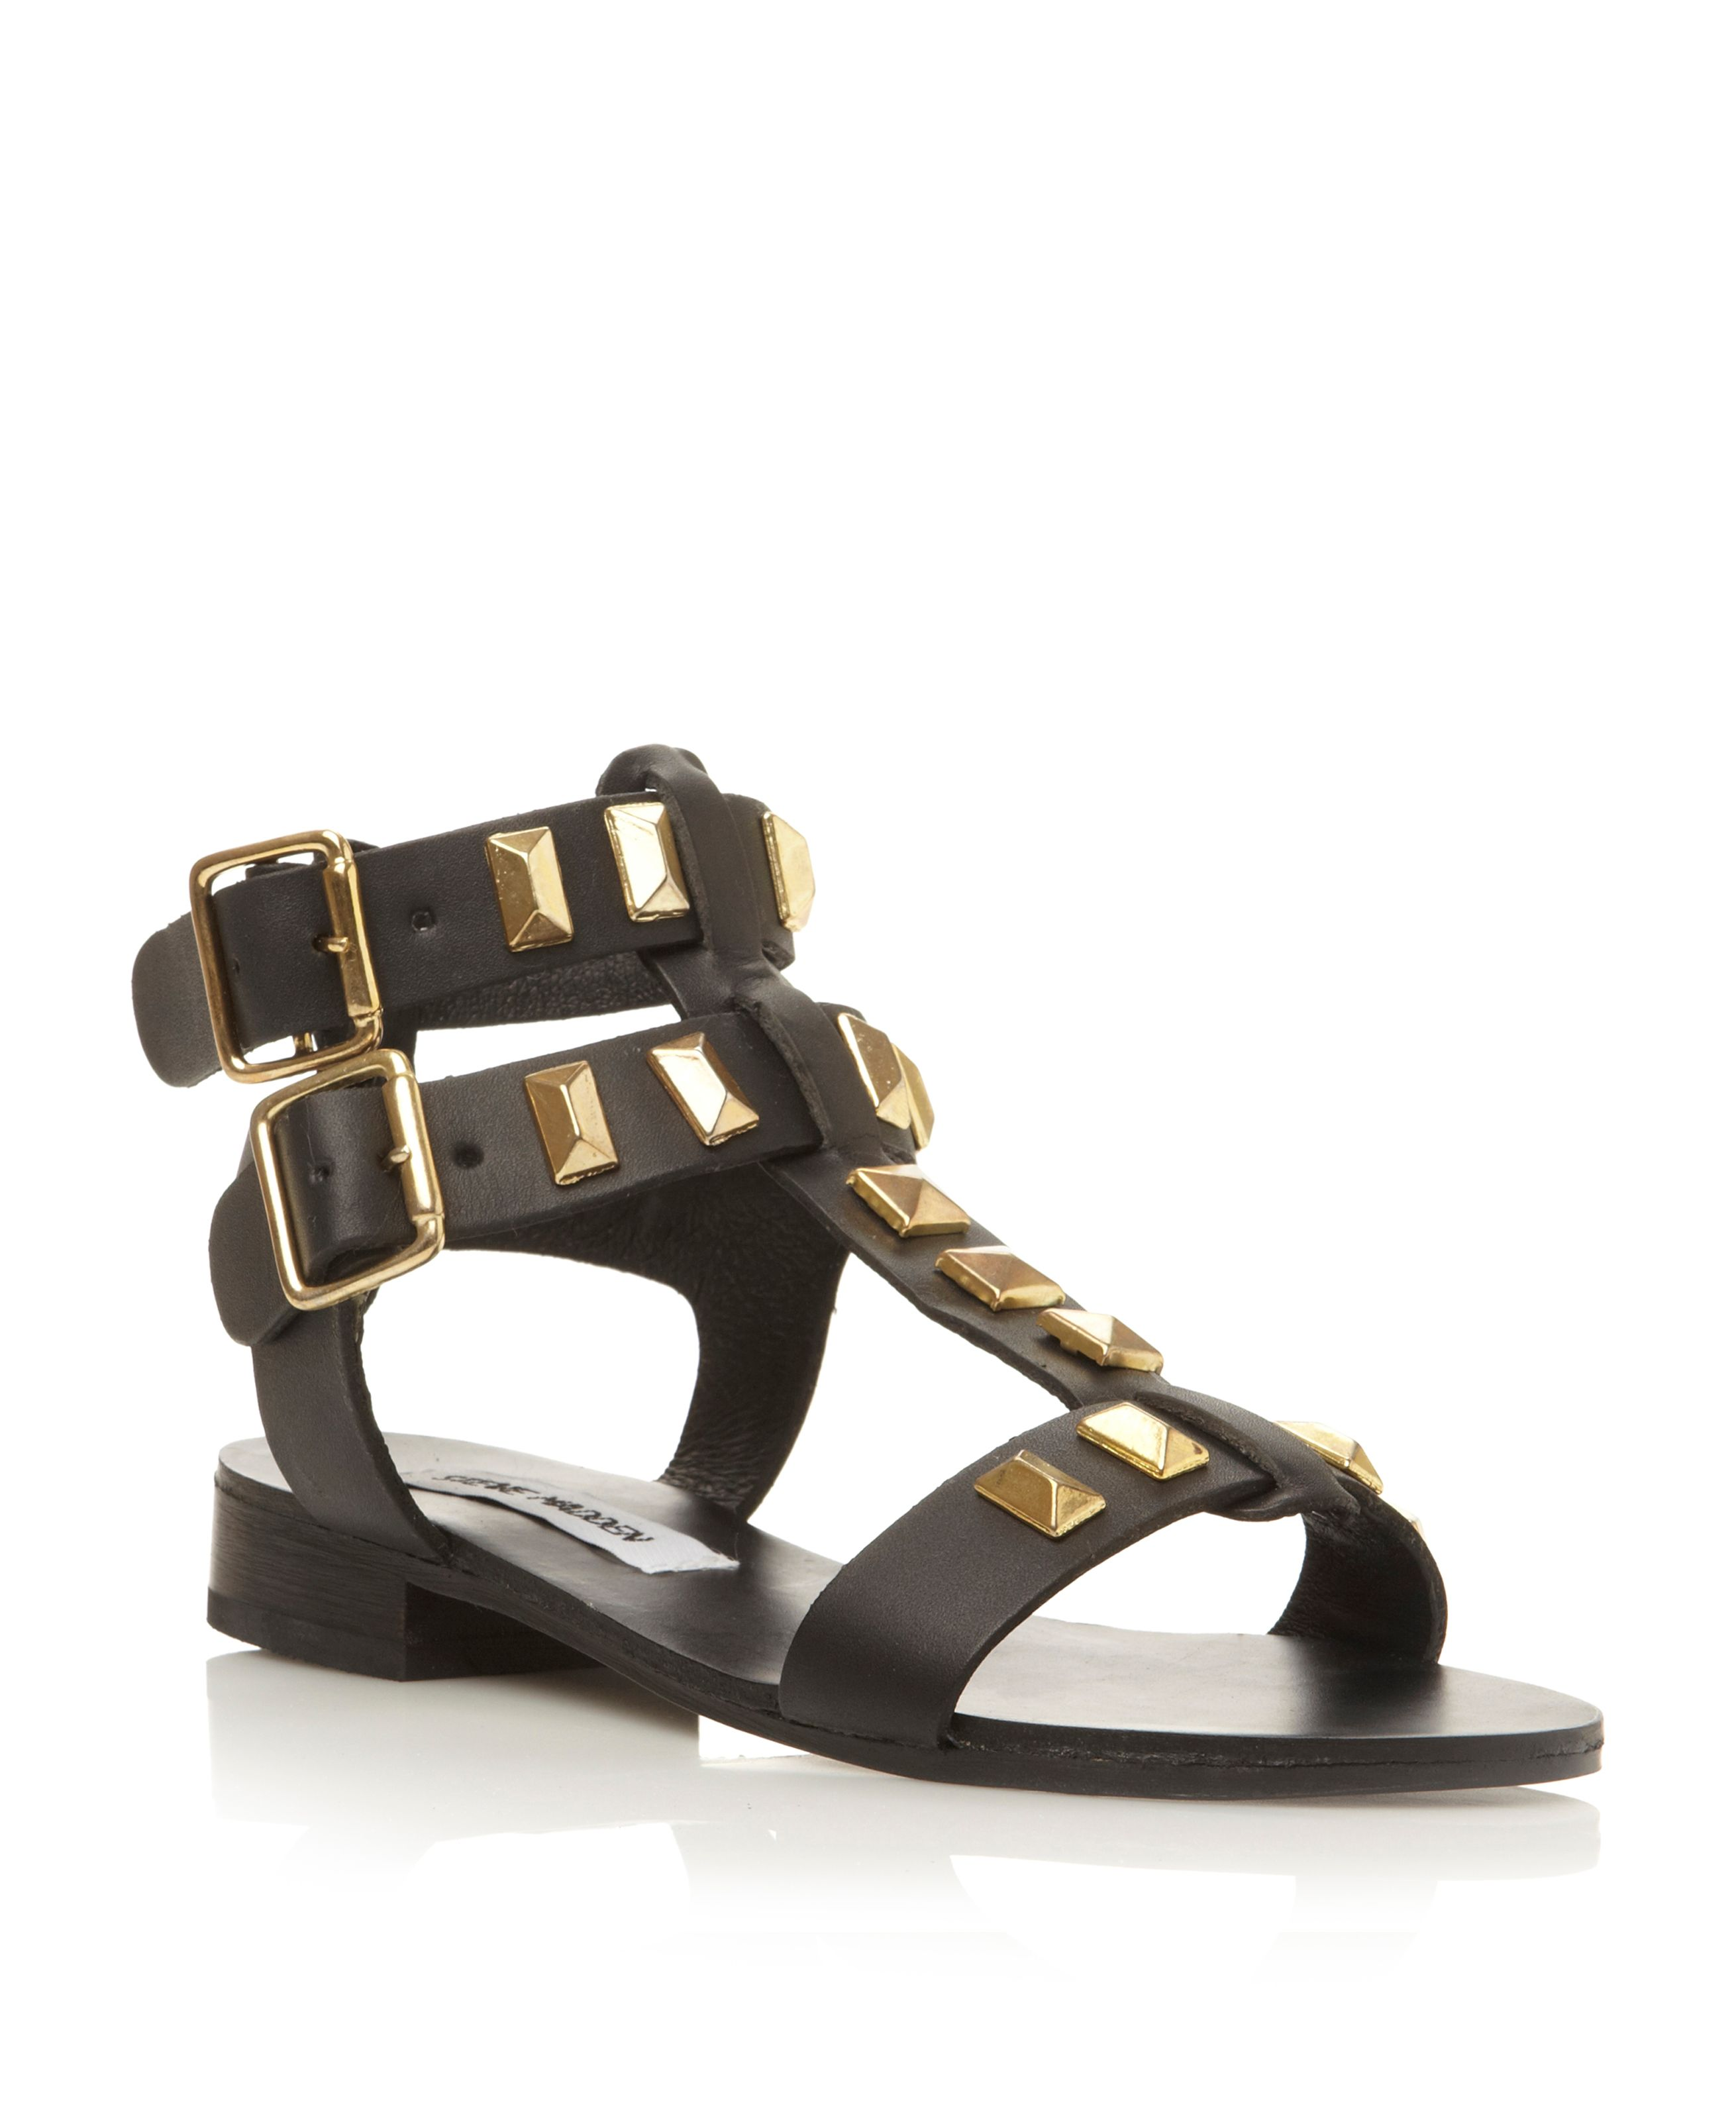 Perfeck leather sandals